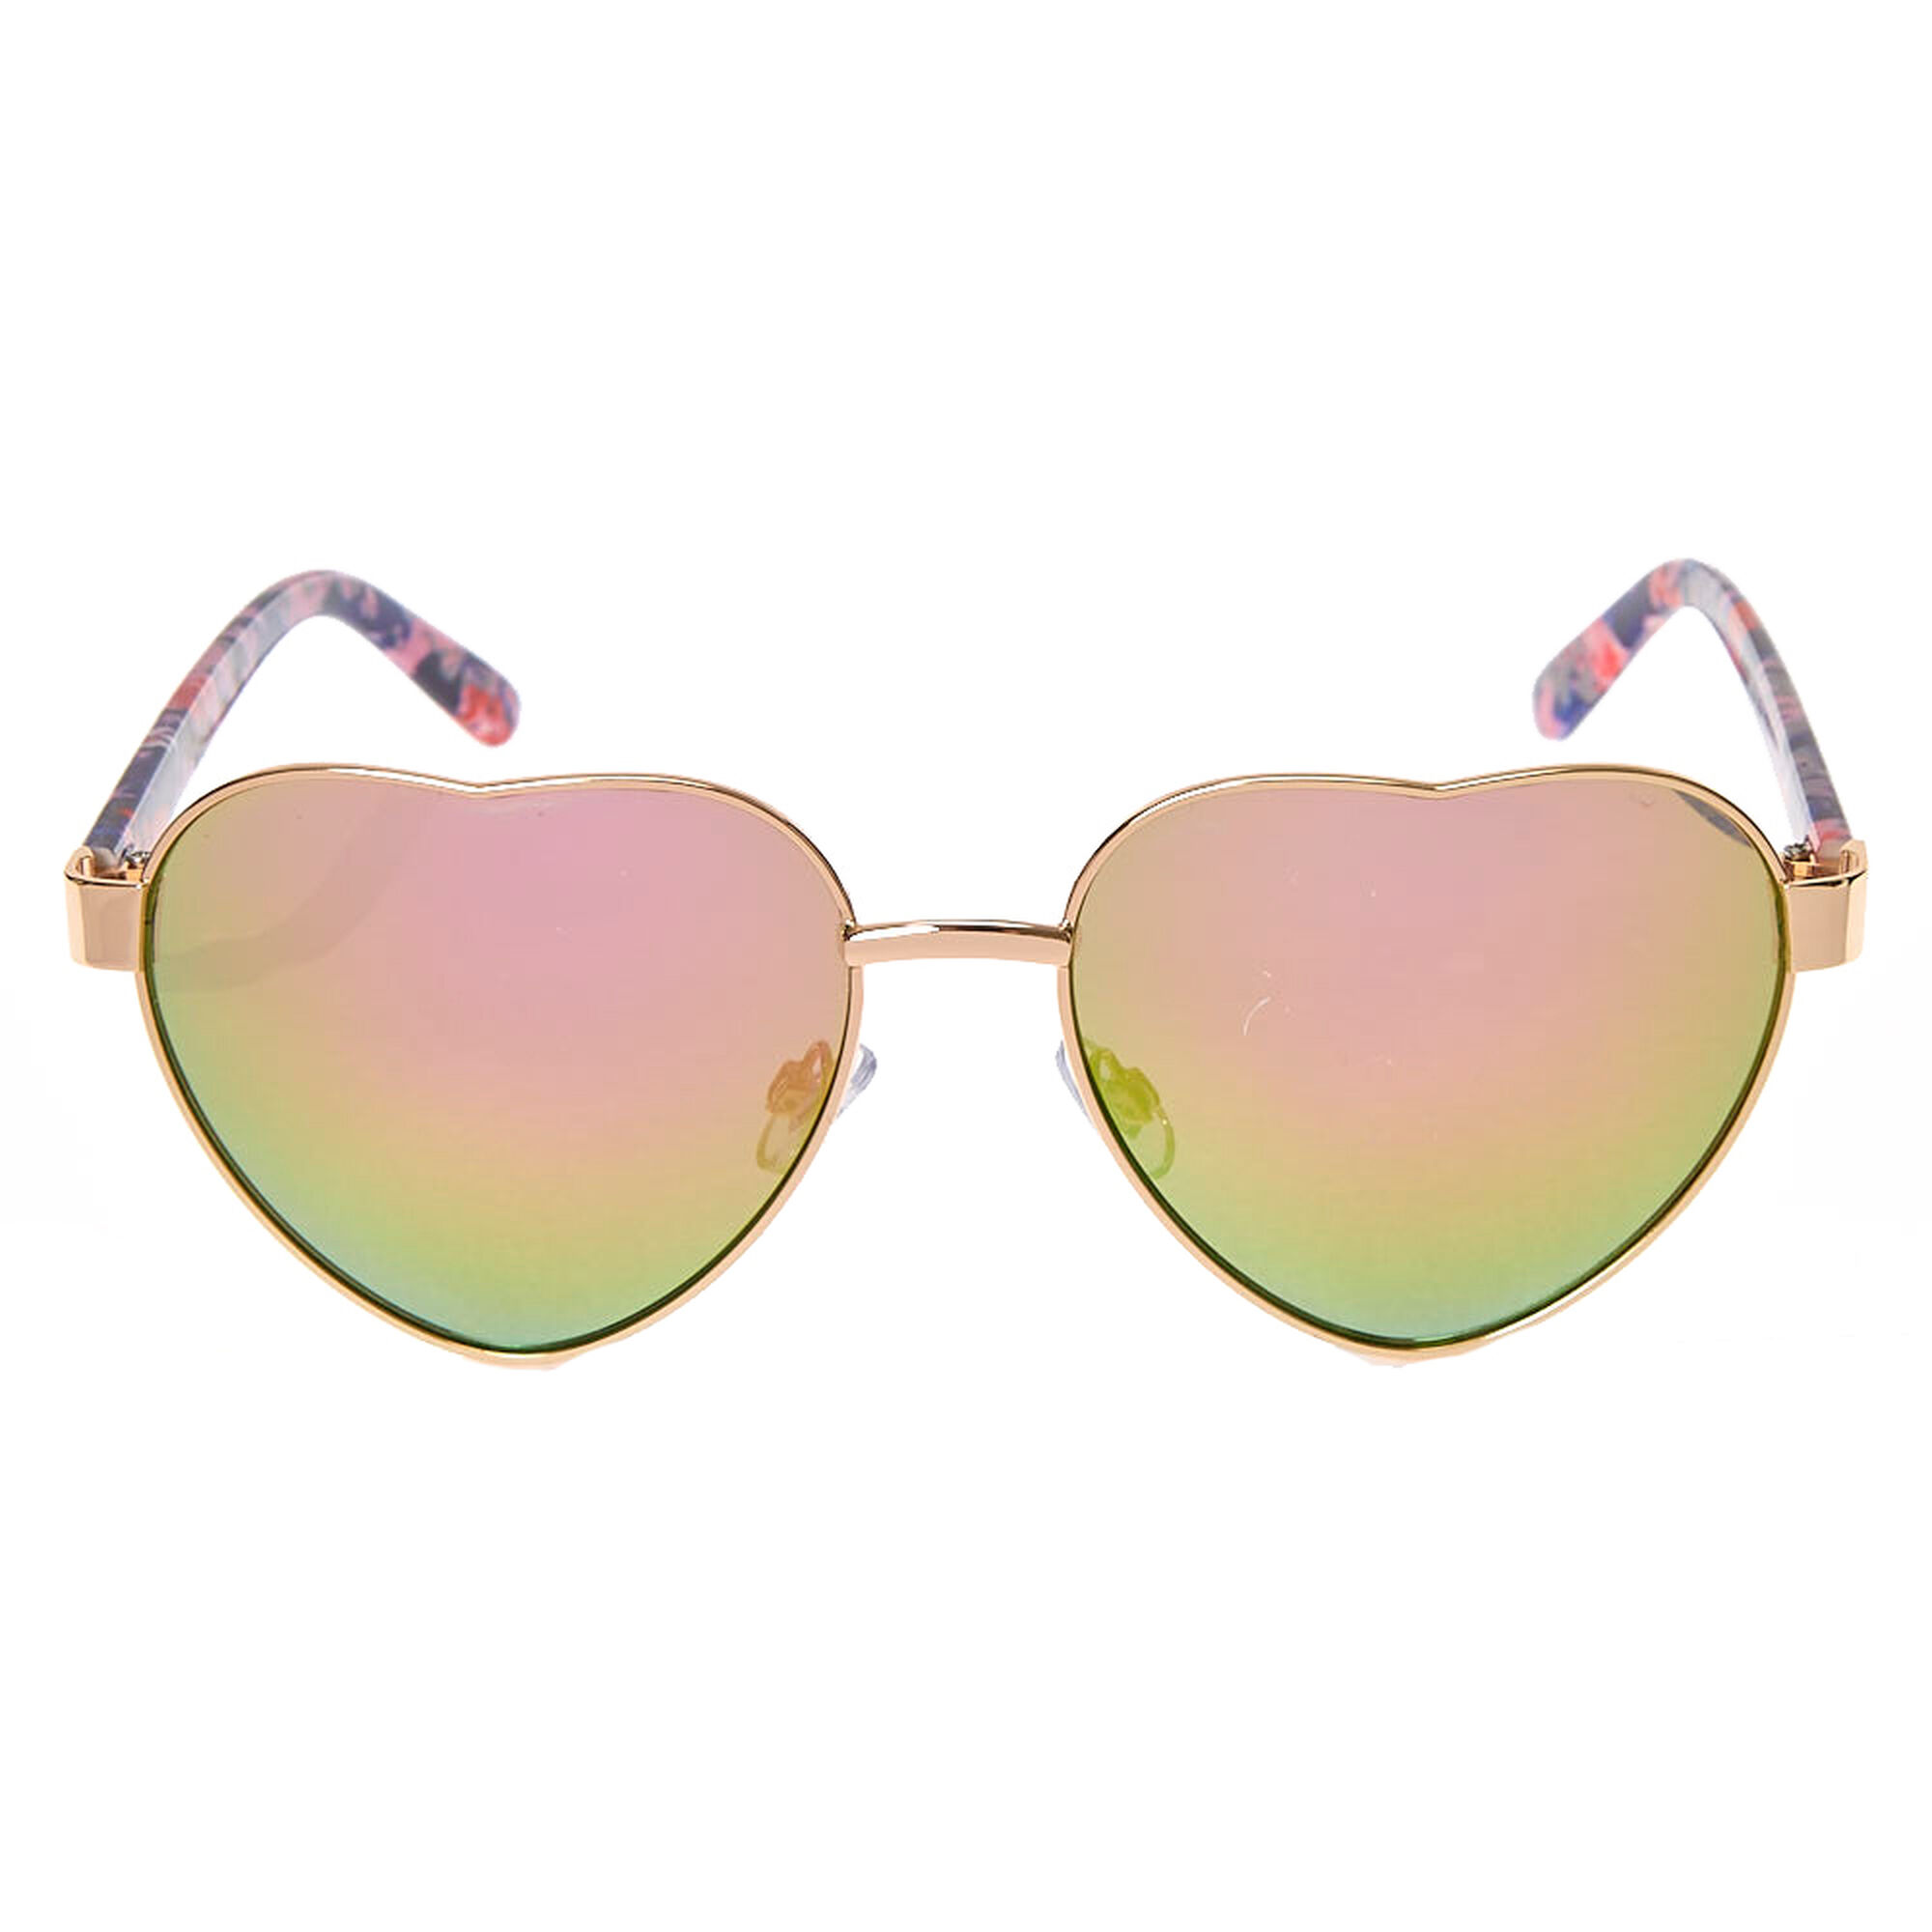 4e68d9bfd8 ... Floral Heart-Shaped Sunglasses